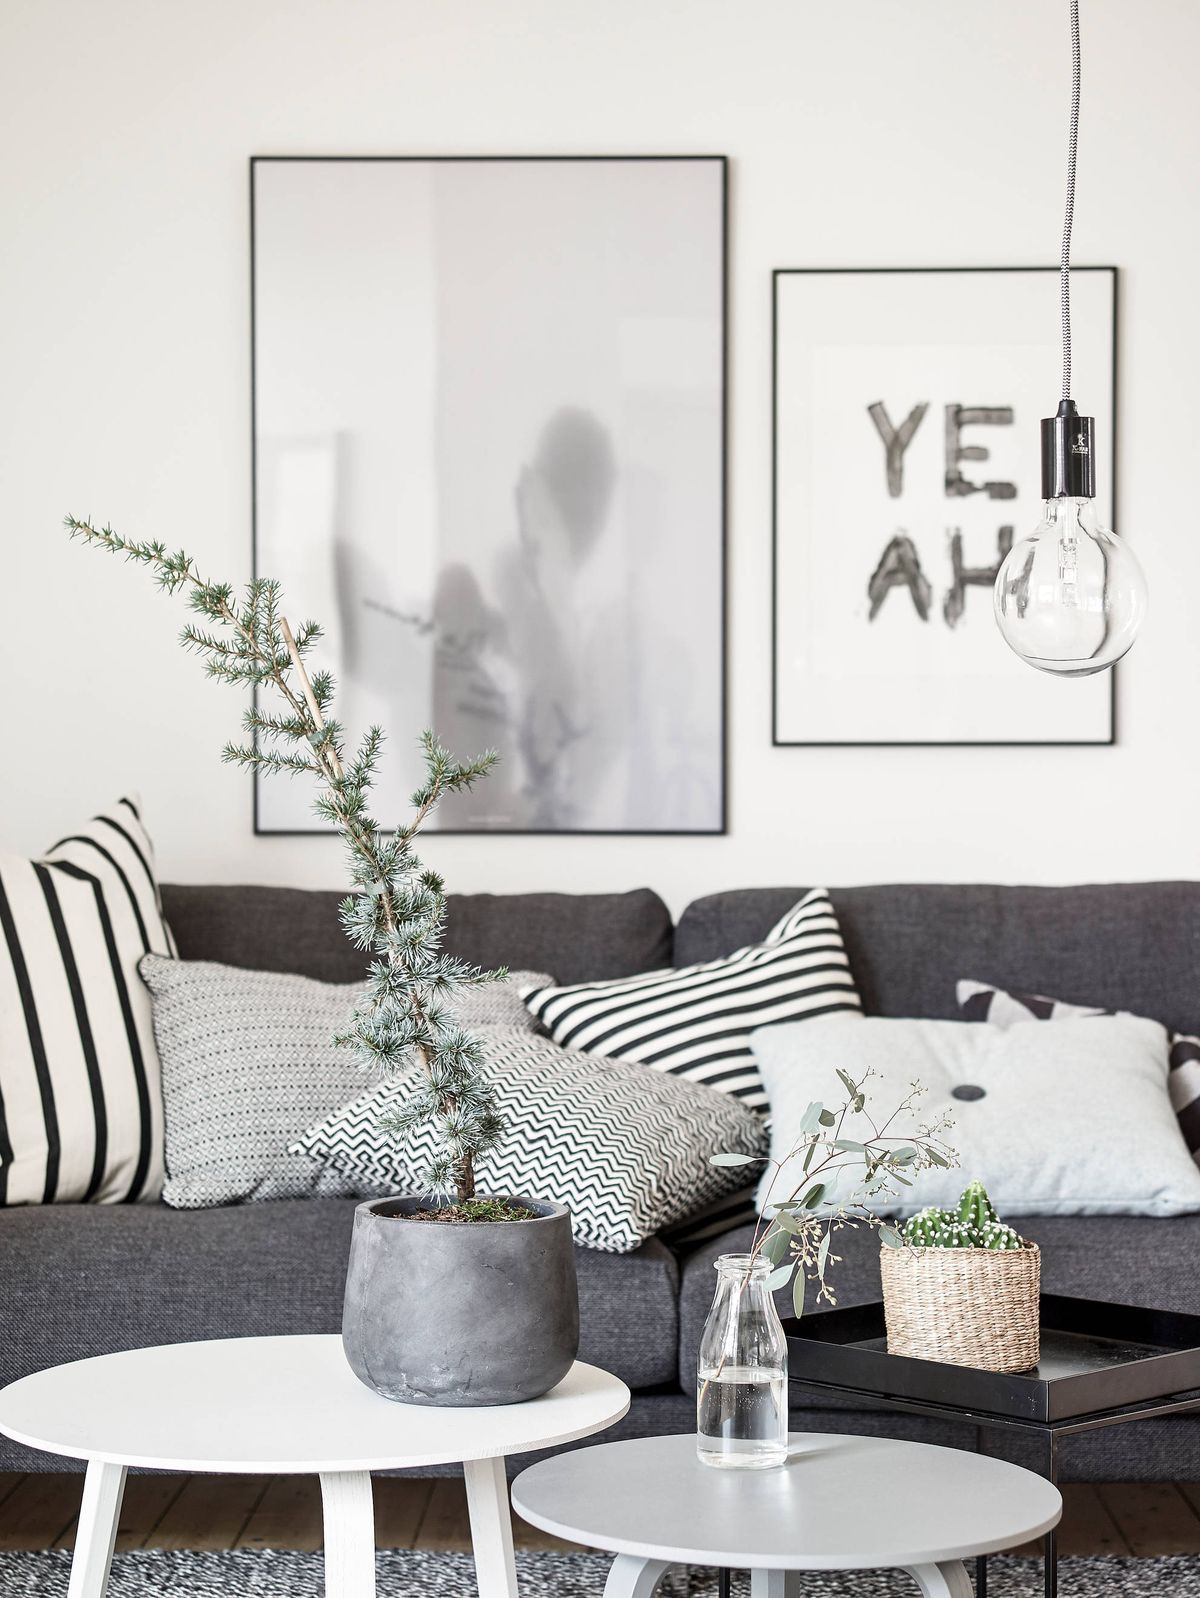 10 tips for the best scandinavian living room decor - Cojines para sofa gris oscuro ...